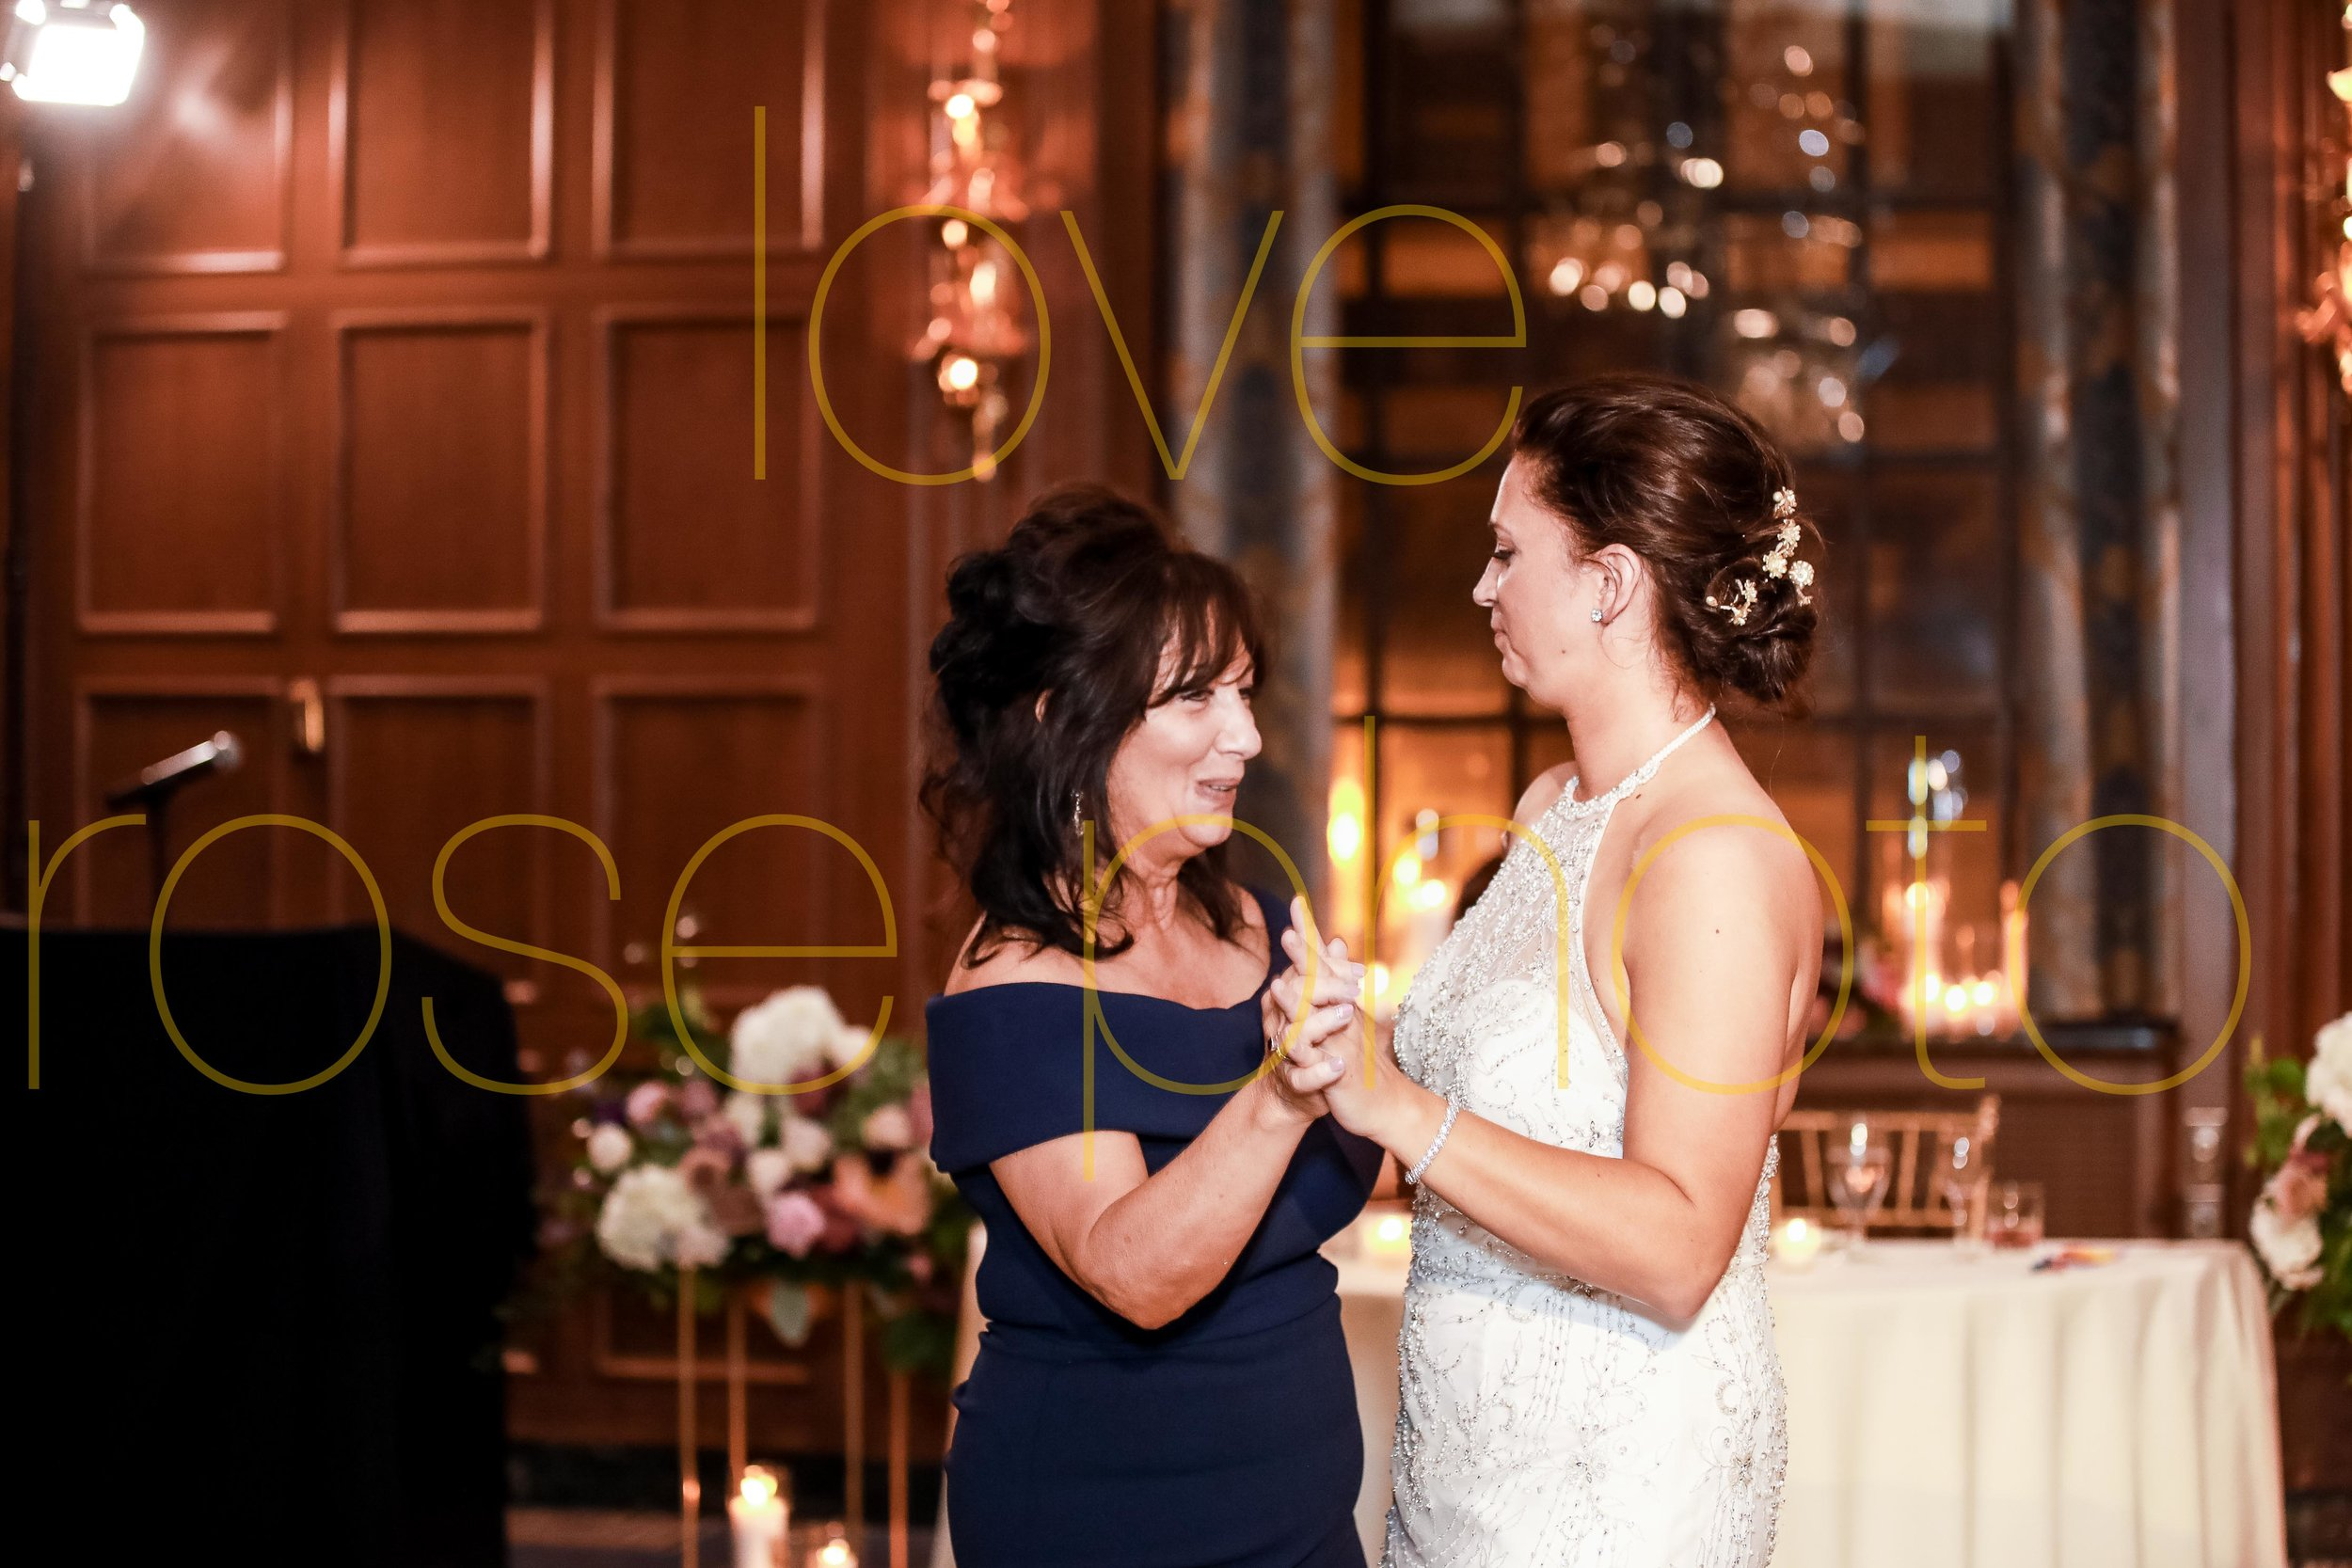 sophie + melissa love rose photo gay wedding chicago pride 2019 -84.jpg